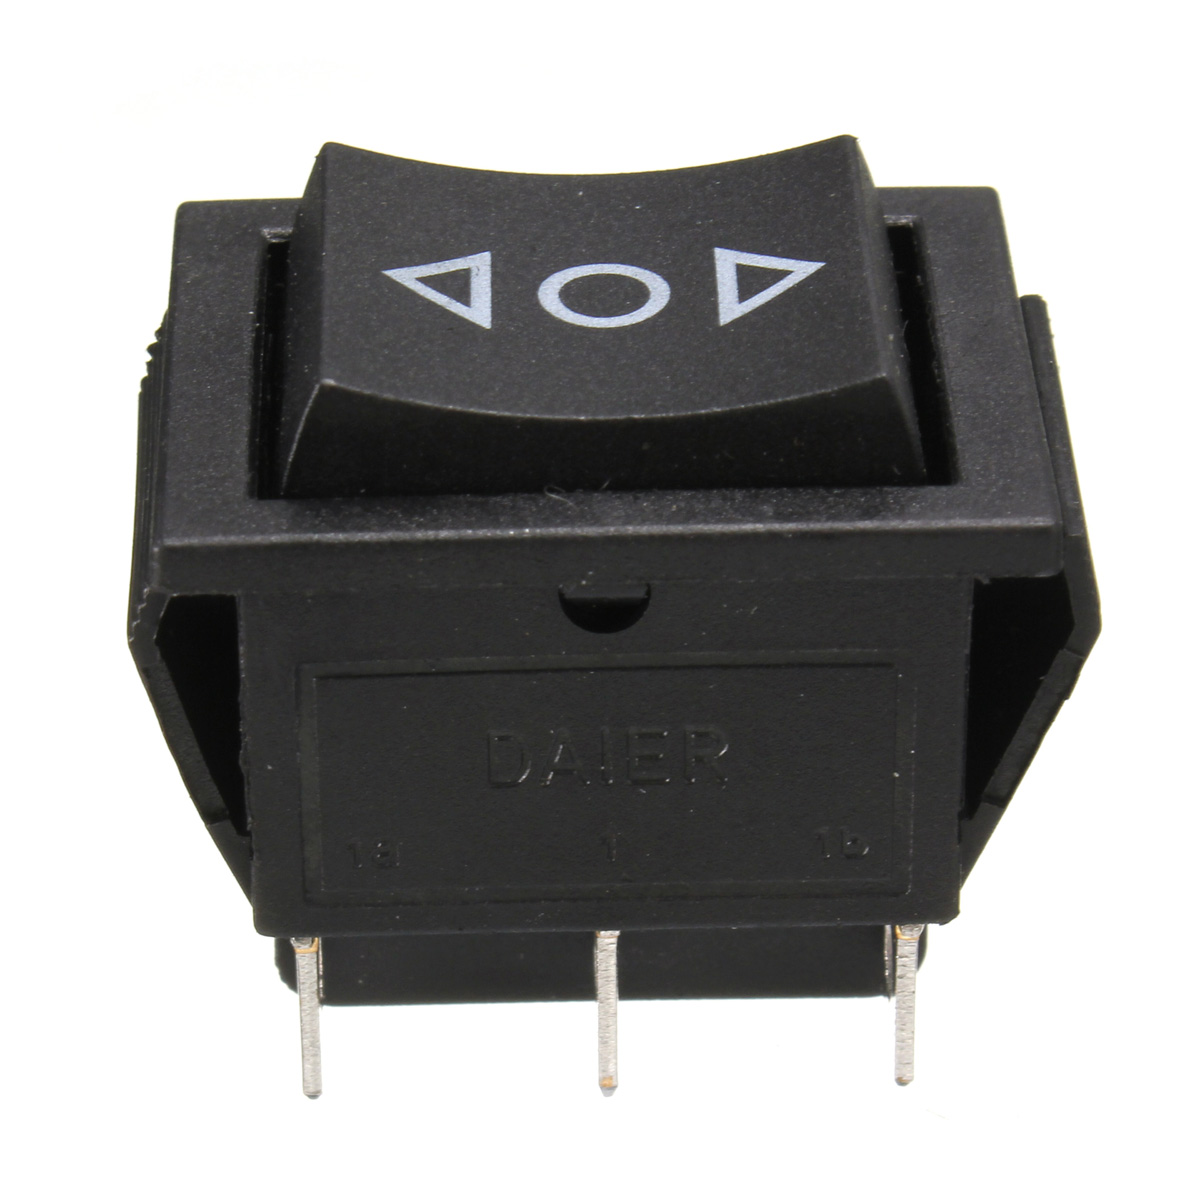 AC 250V/10A 125V/15A 12 Volt 6-Pin DPDT Power Window Momentary Rocker Switch Control Button Car Power Window Switch image